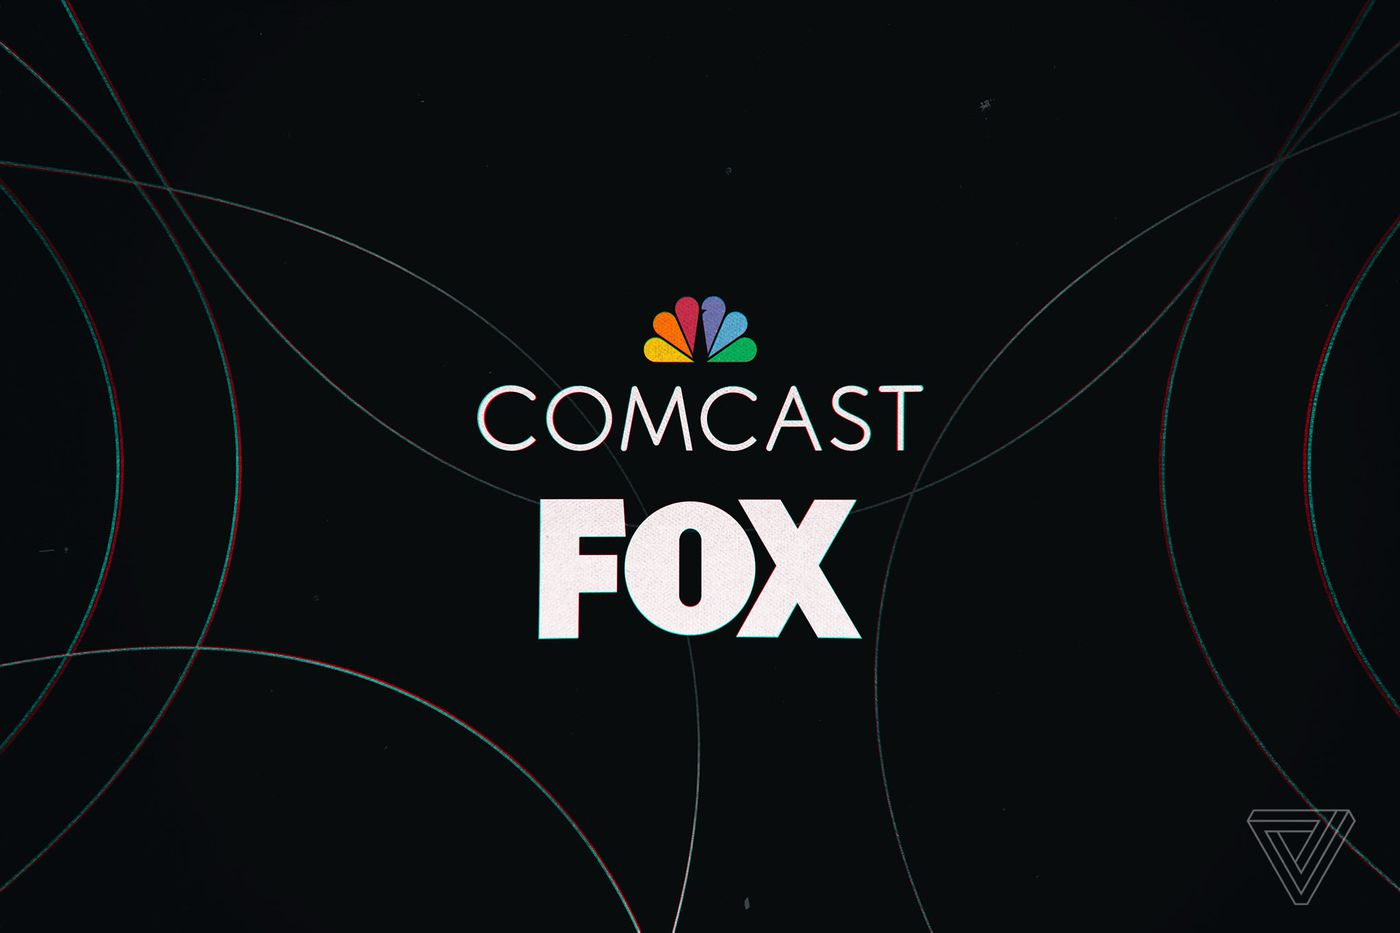 Comcast gives up on buying 21st Century Fox assets and